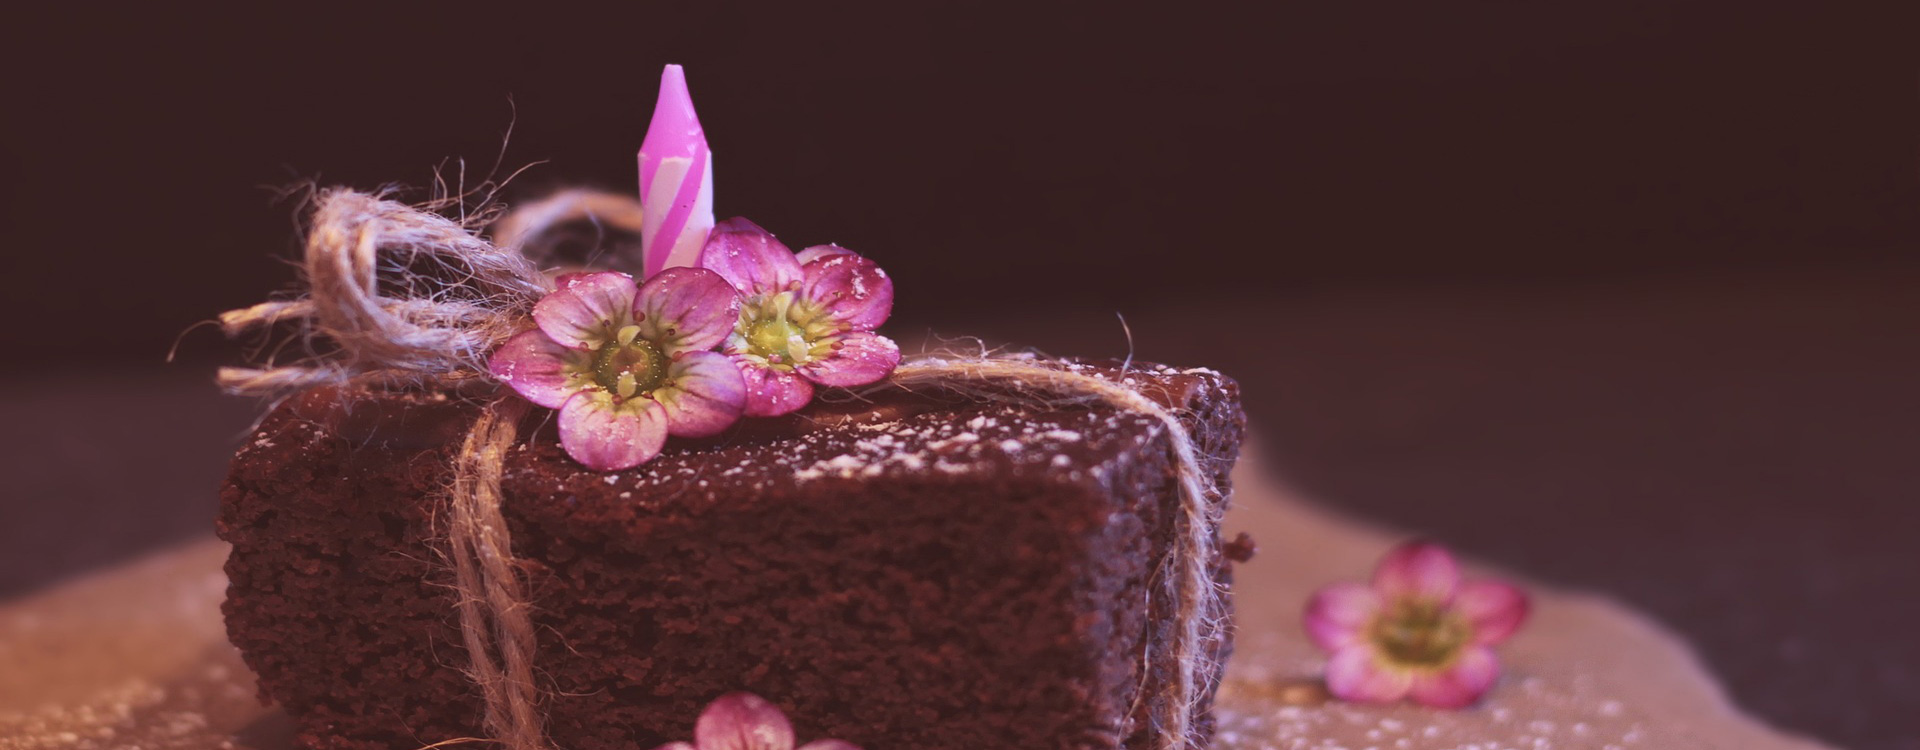 Celebrate your special occasions with  Cakes 100